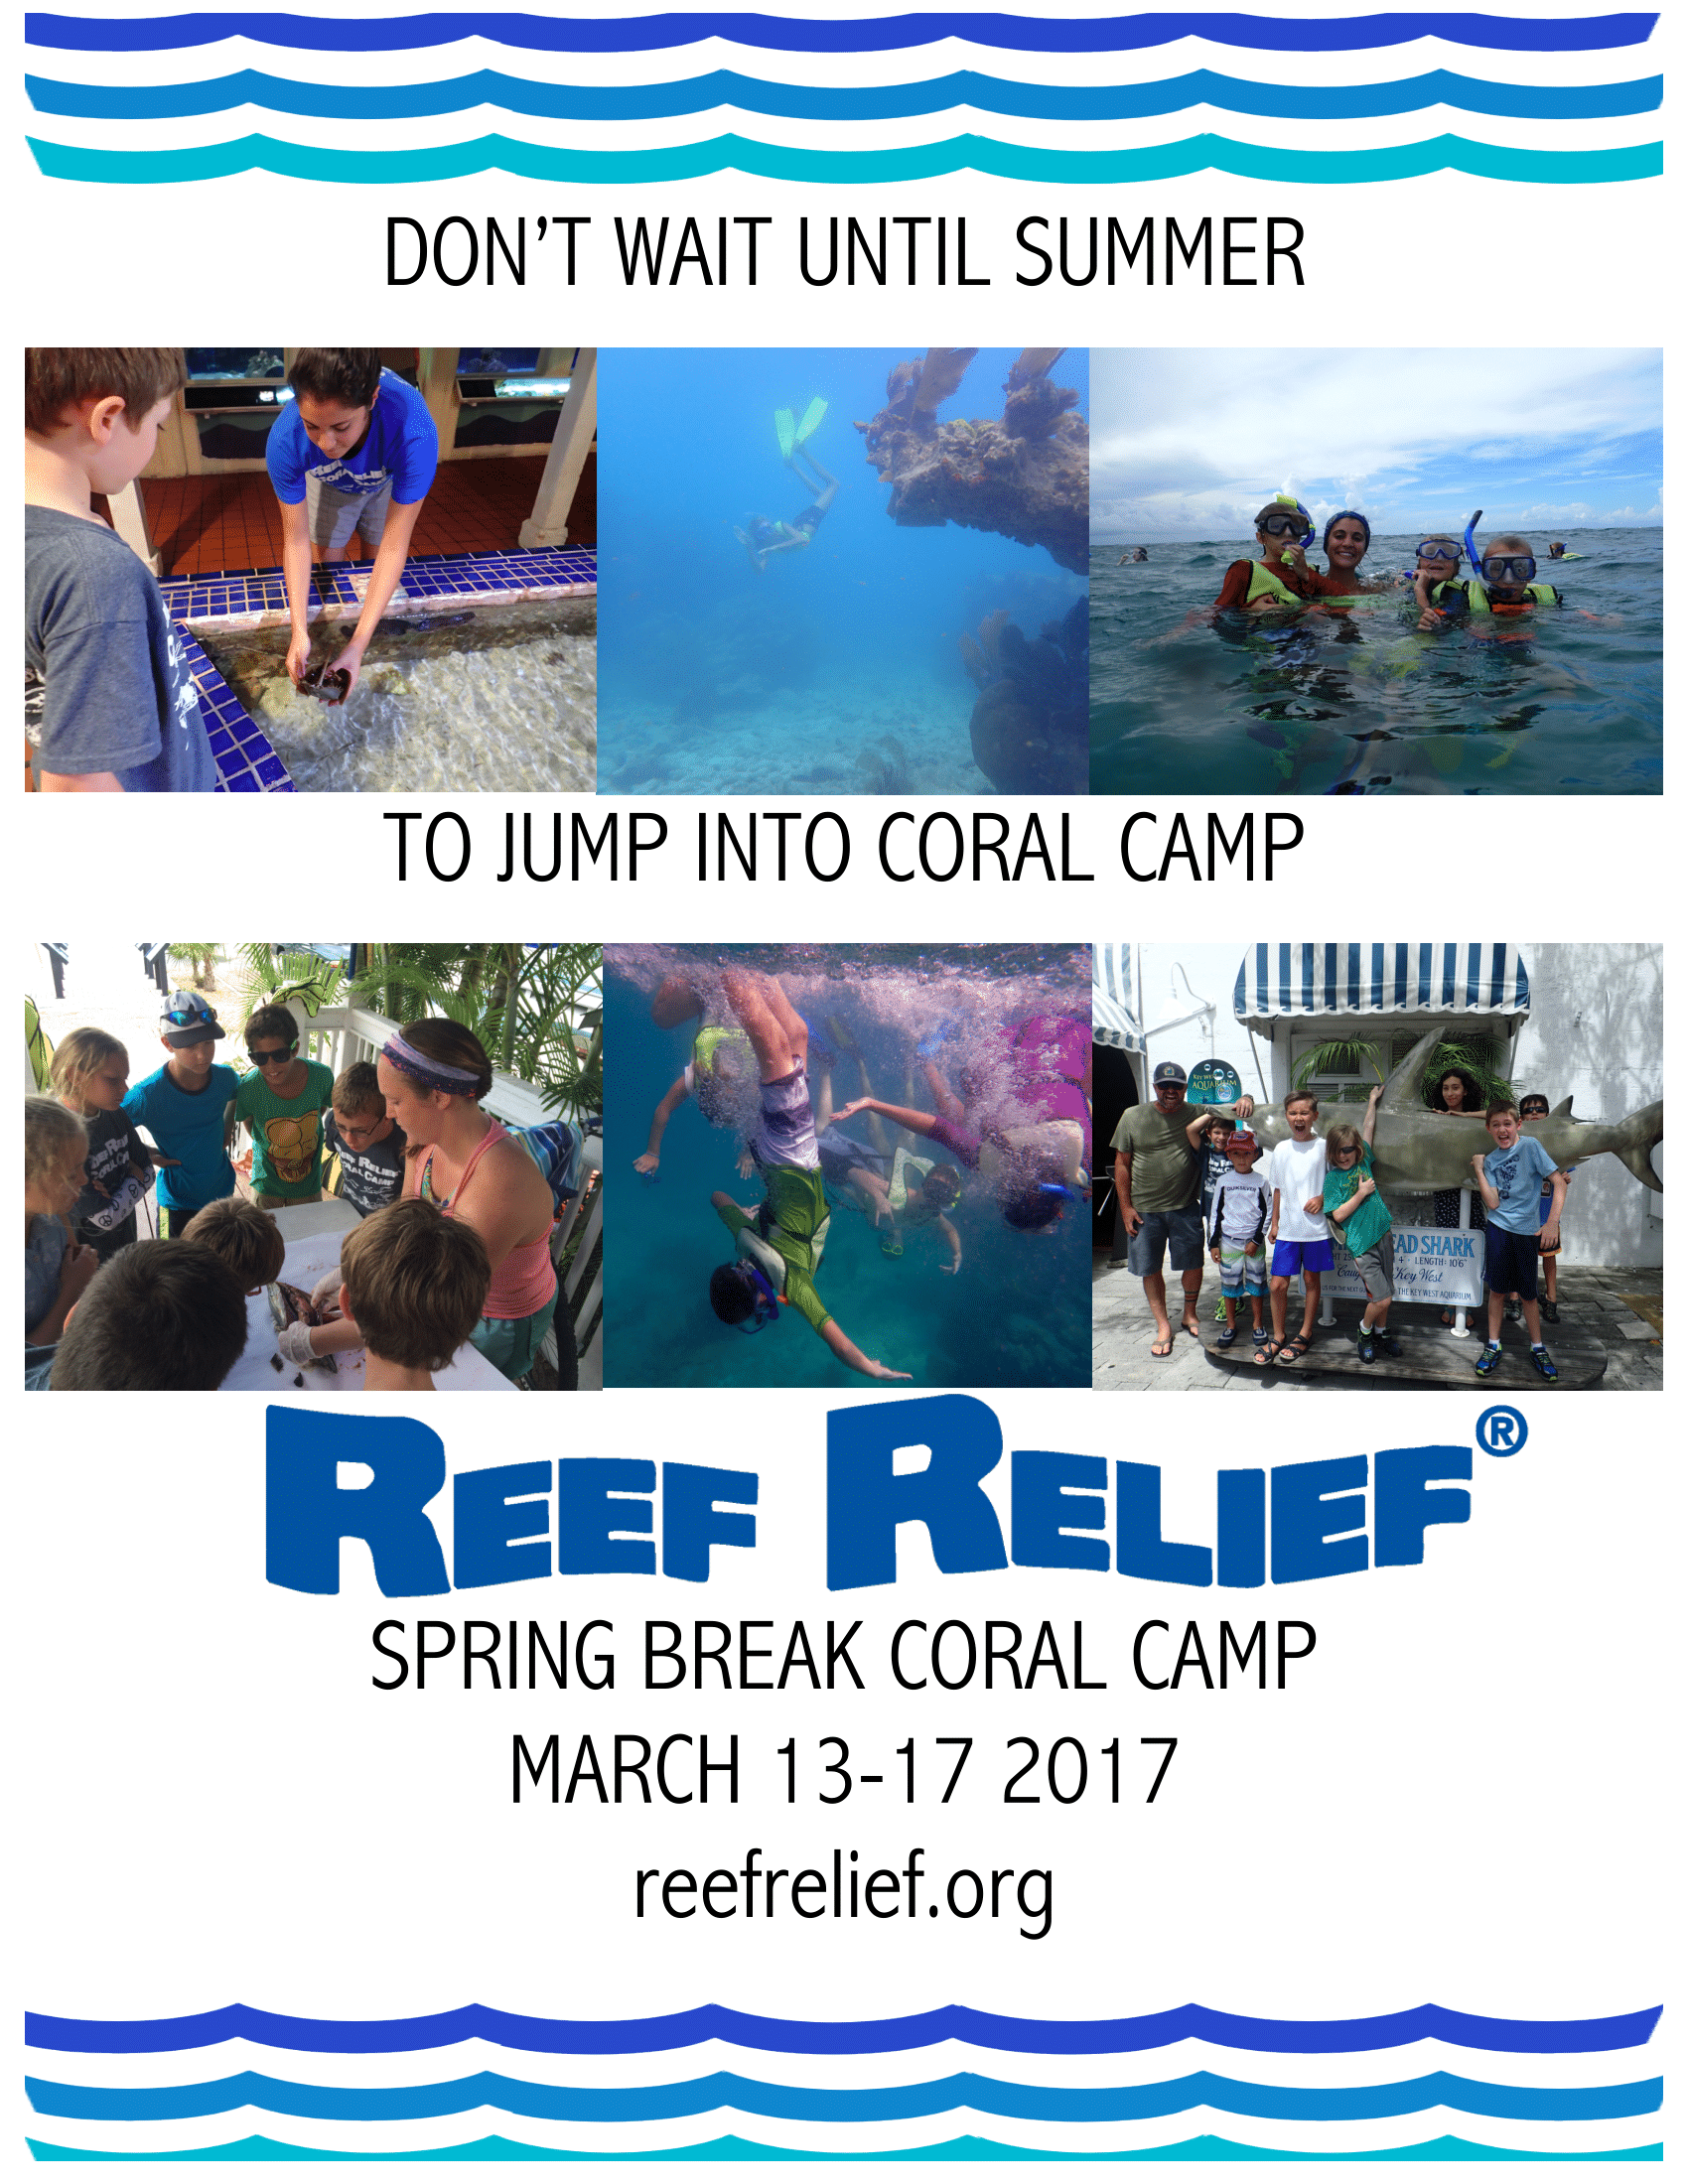 Spring Break Coral Camp